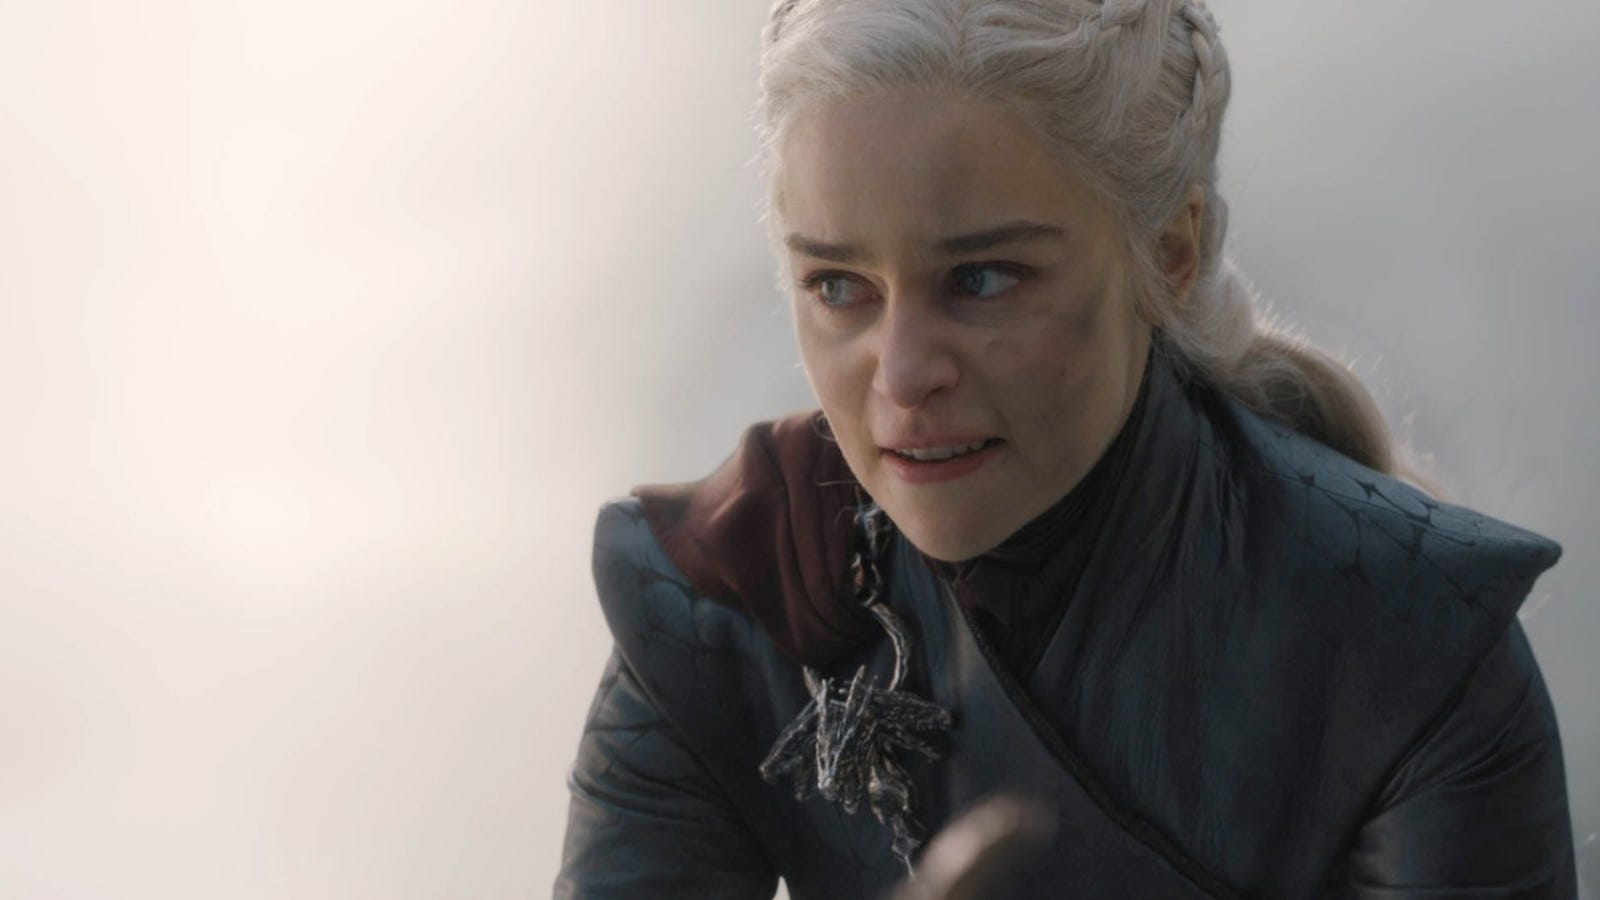 Game of Thrones Petition to Remake Season 8 Reaches a Million Signatures